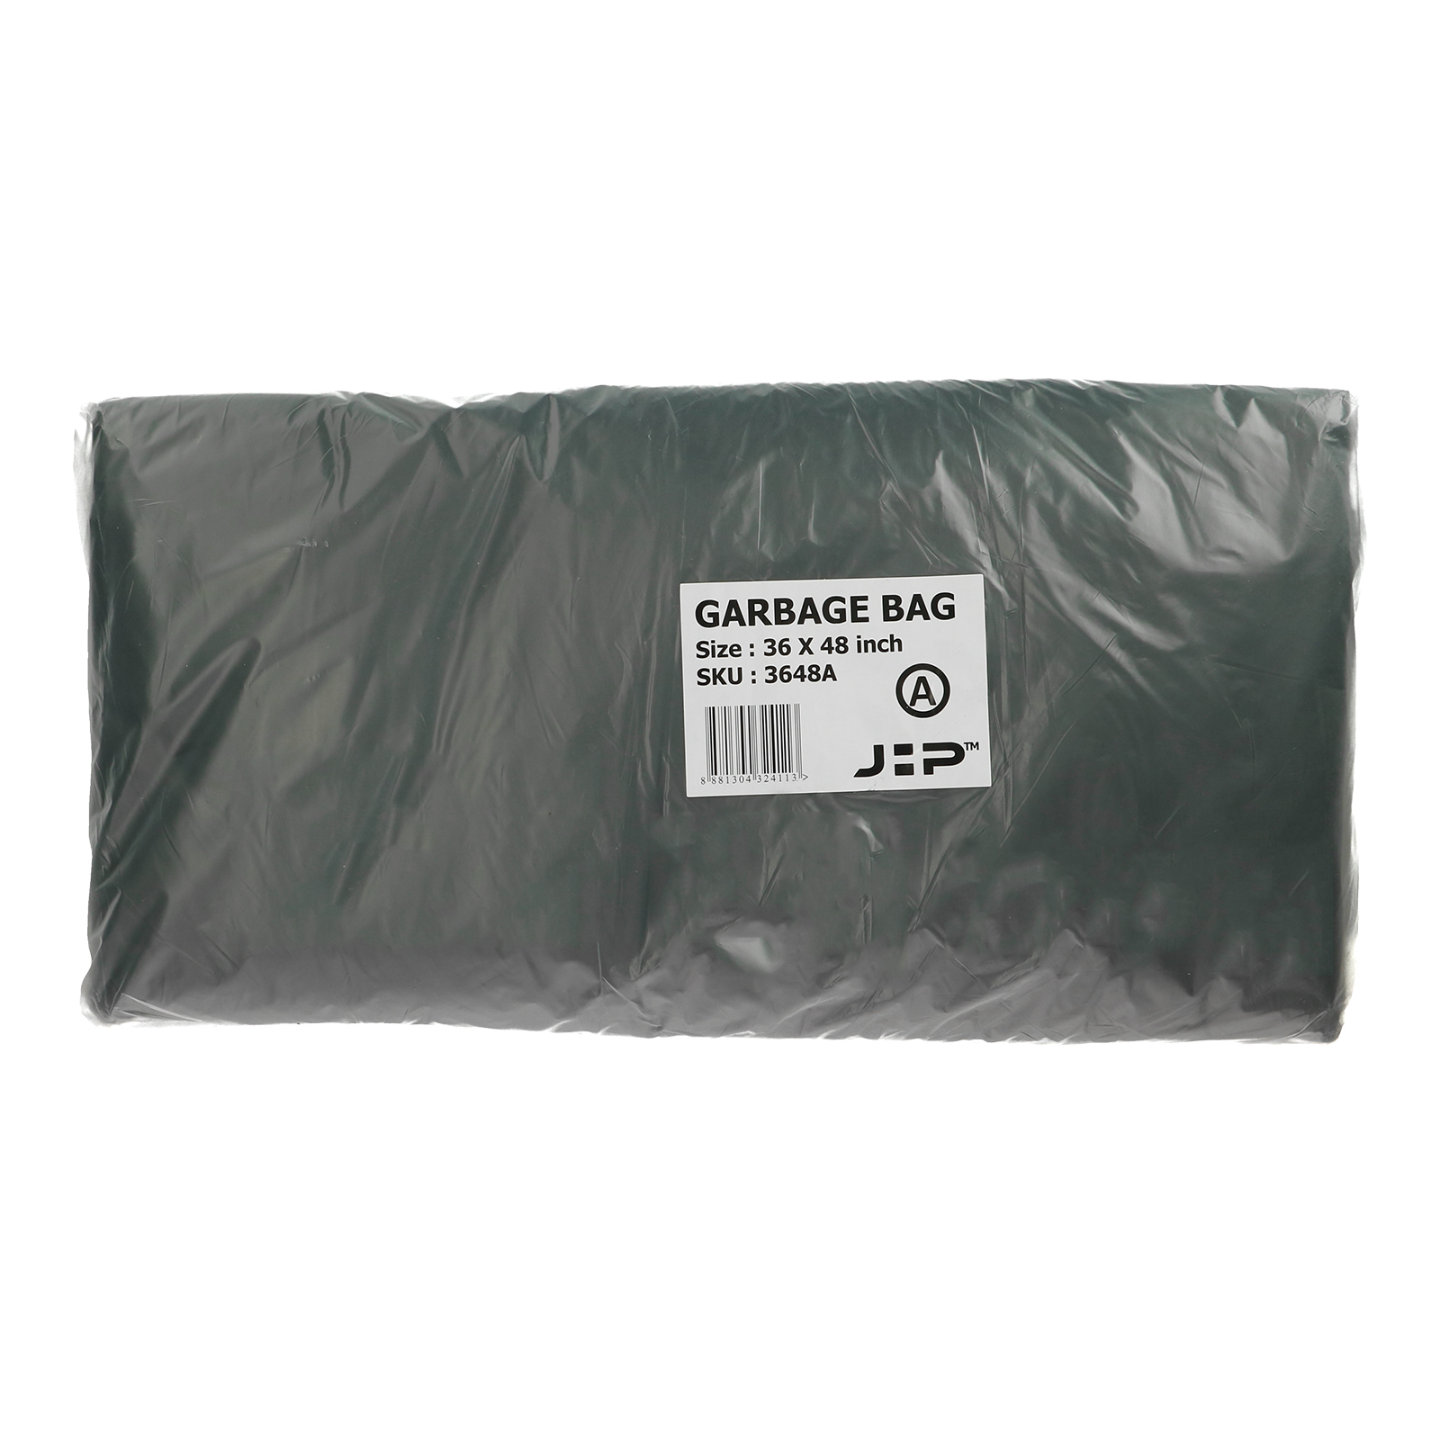 36 x 48 Garbage Bag R 垃圾袋 Black